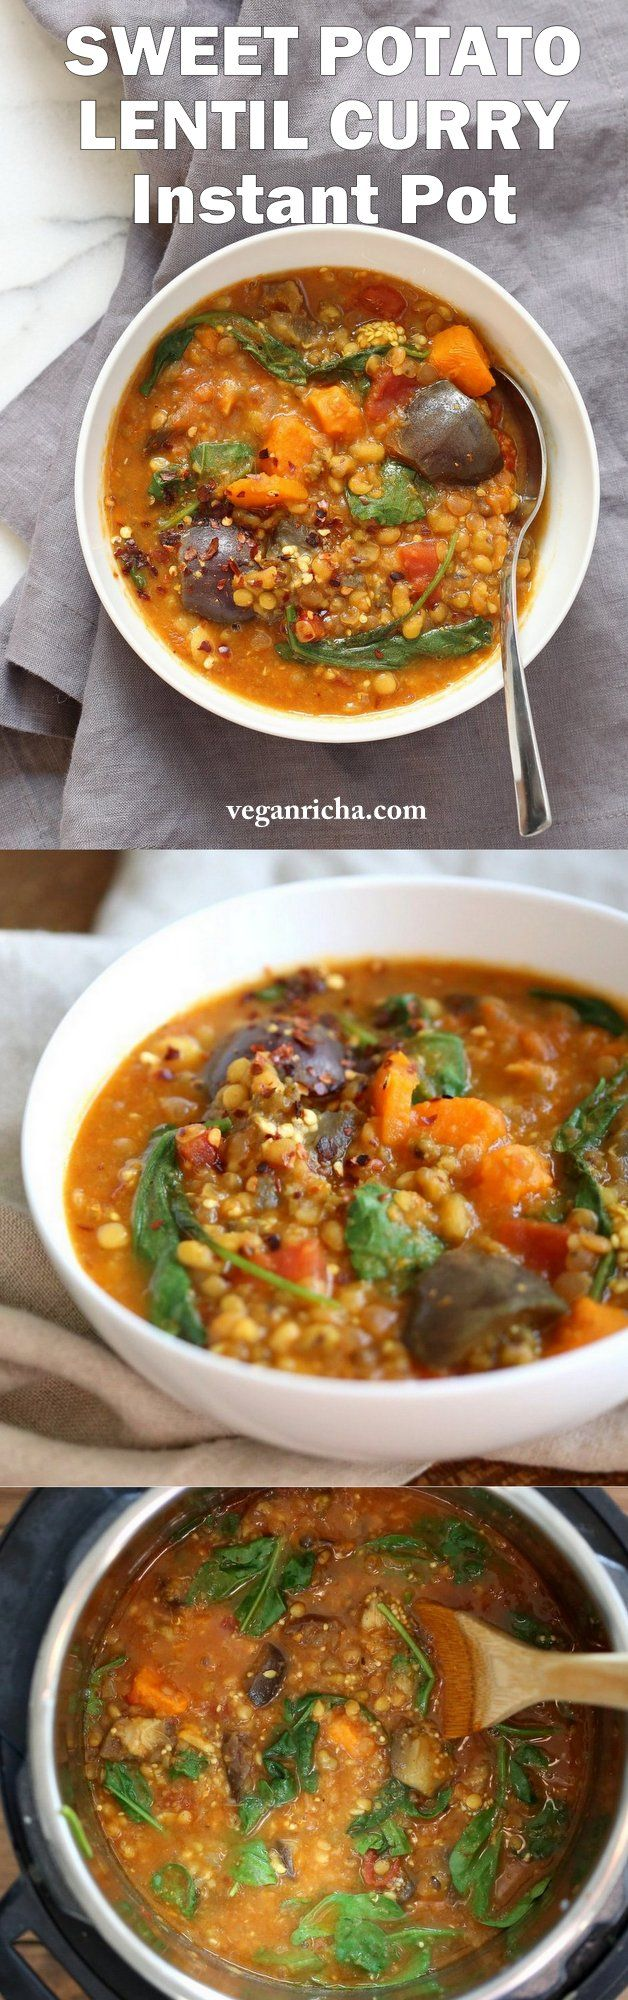 Instant Pot Eggplant Sweet Potato Lentil Curry. Mung Beans, lentils, spices, sweet potato and eggplant make a filling curry or soup. Use other veggies of choice.